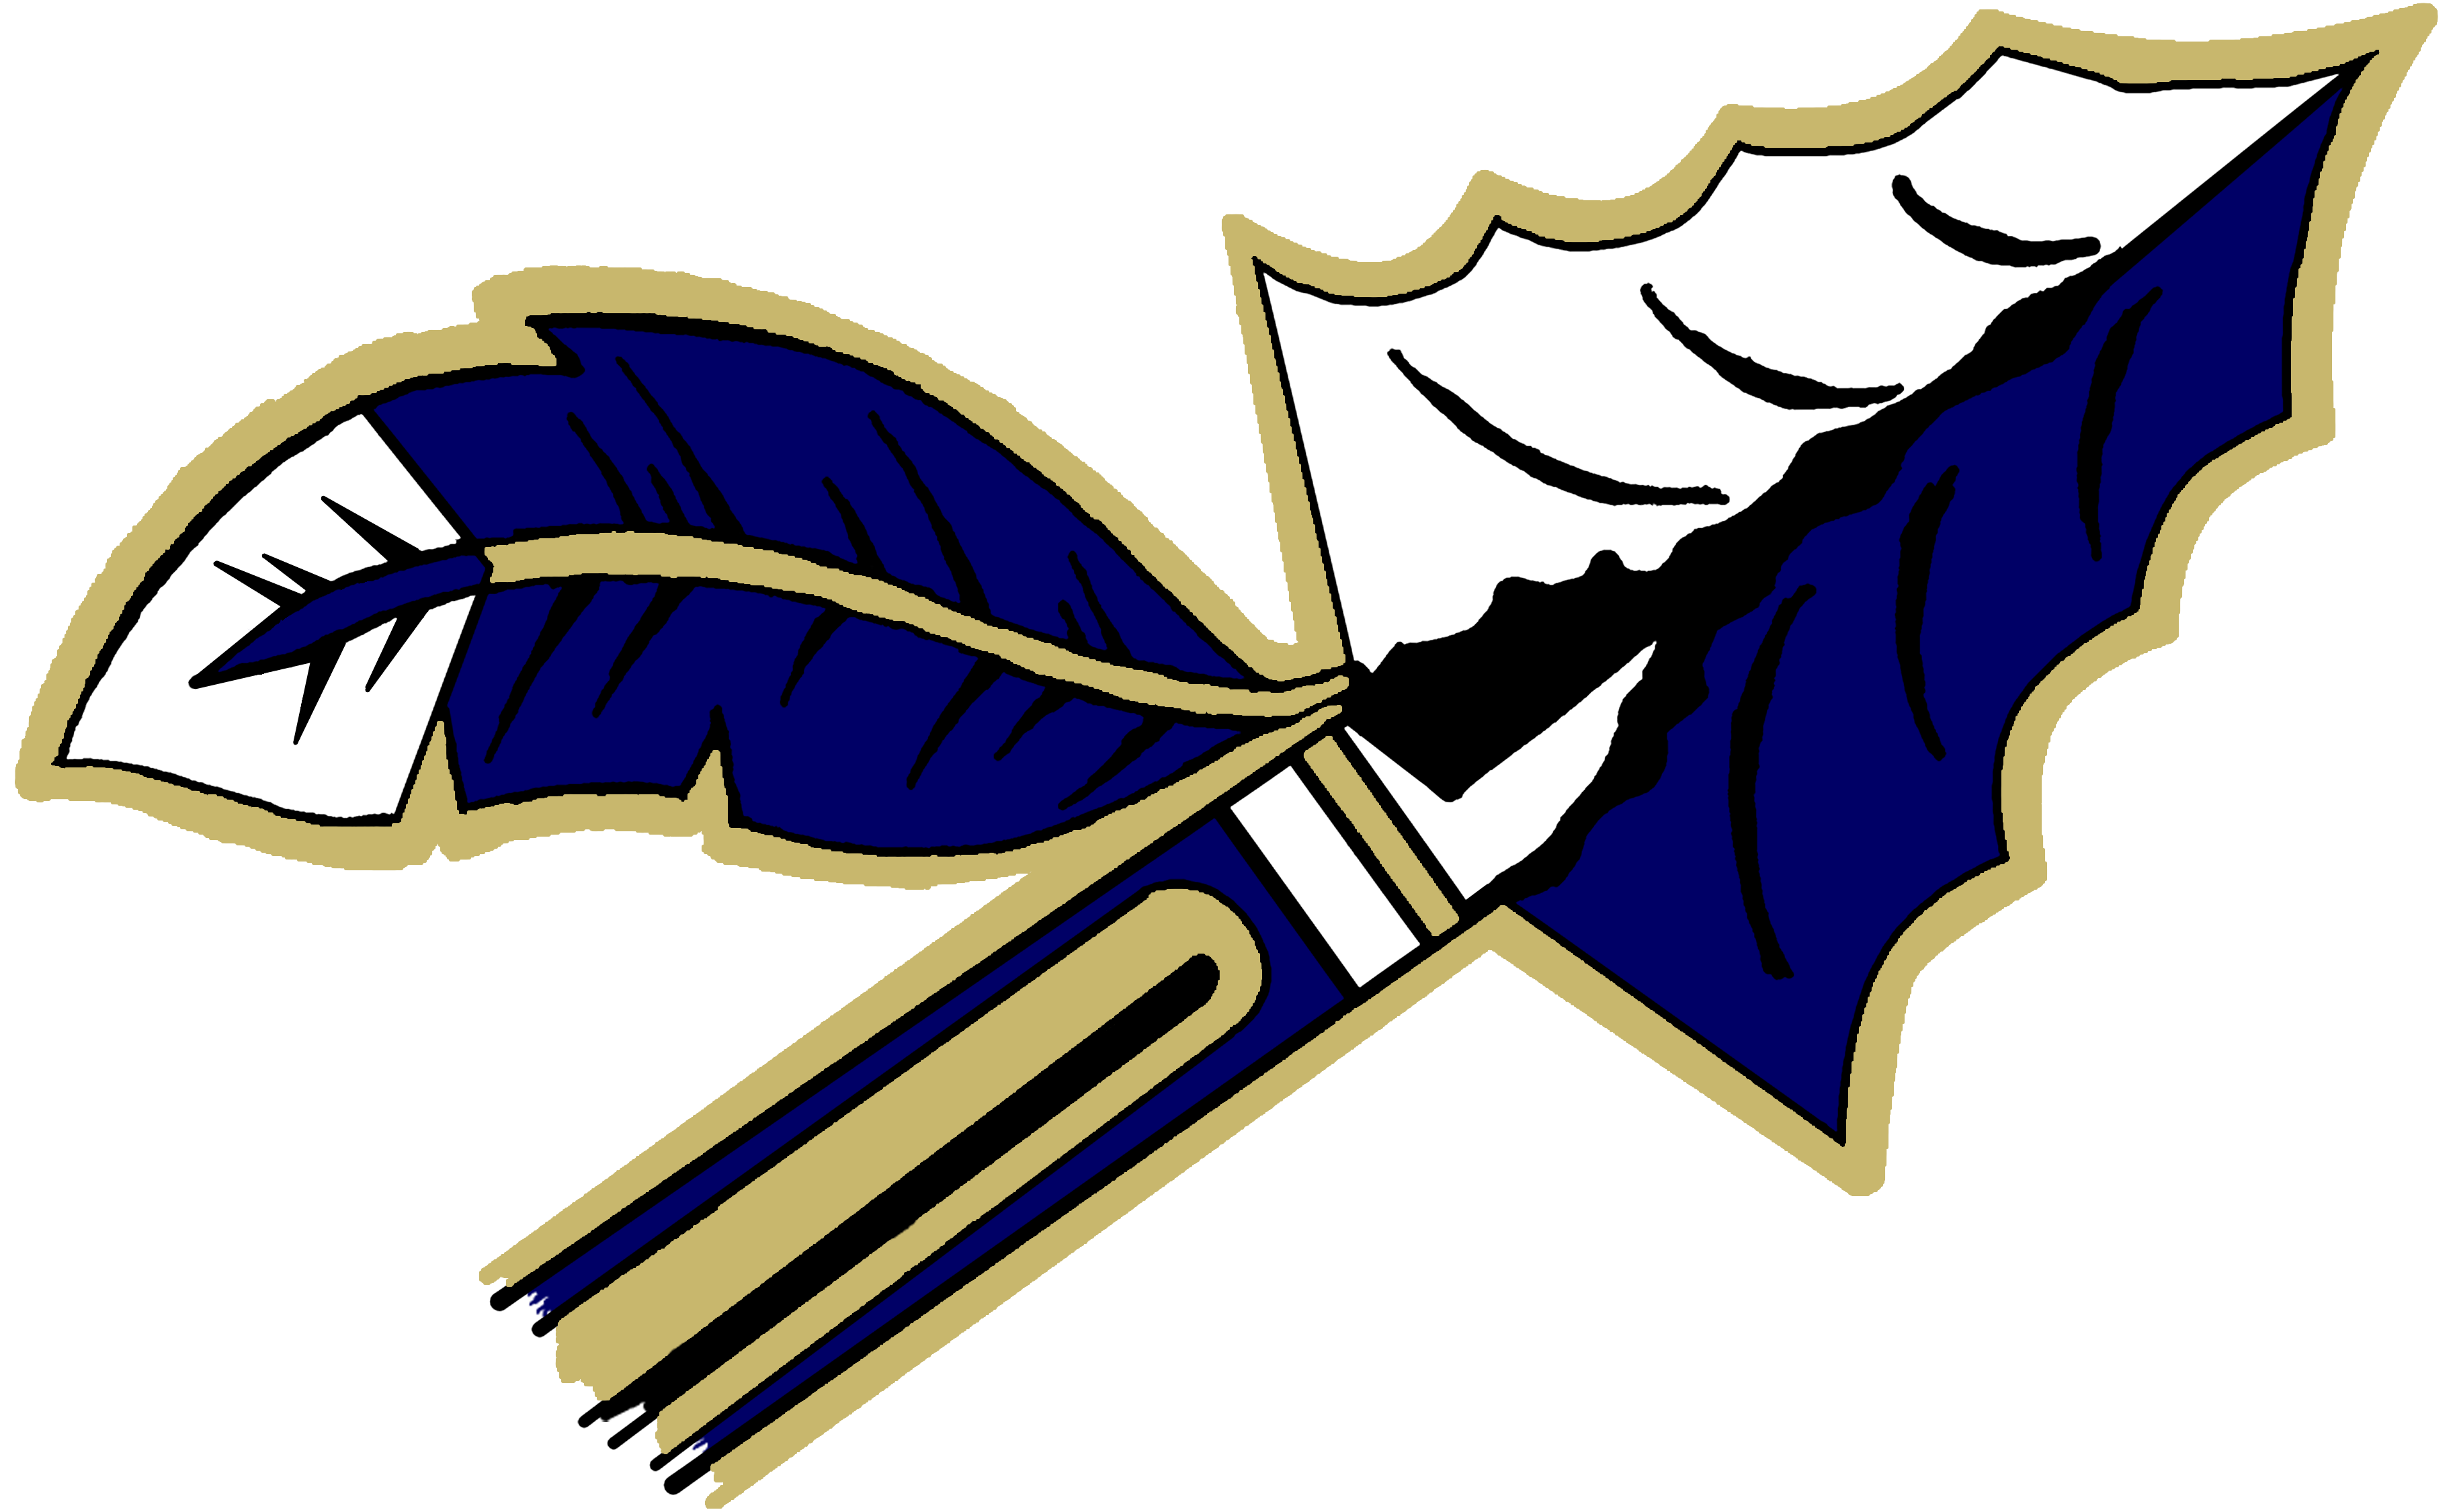 Crete monee school district. Arrowhead clipart warrior